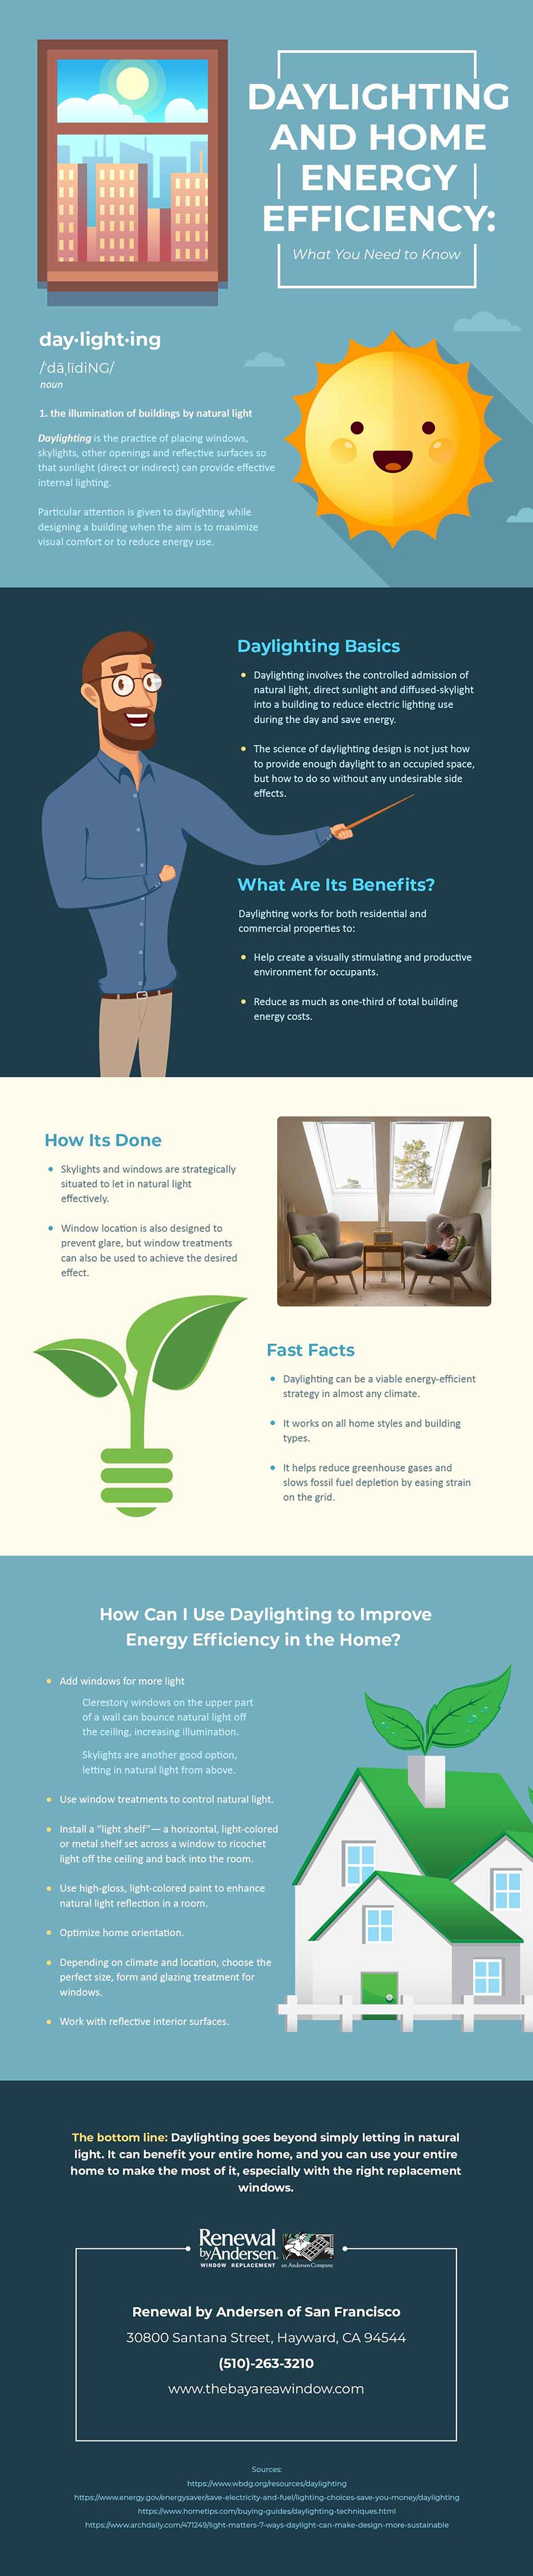 Infographic: What is Daylighting and in What Ways Can It Improve A Home's Energy Efficiency